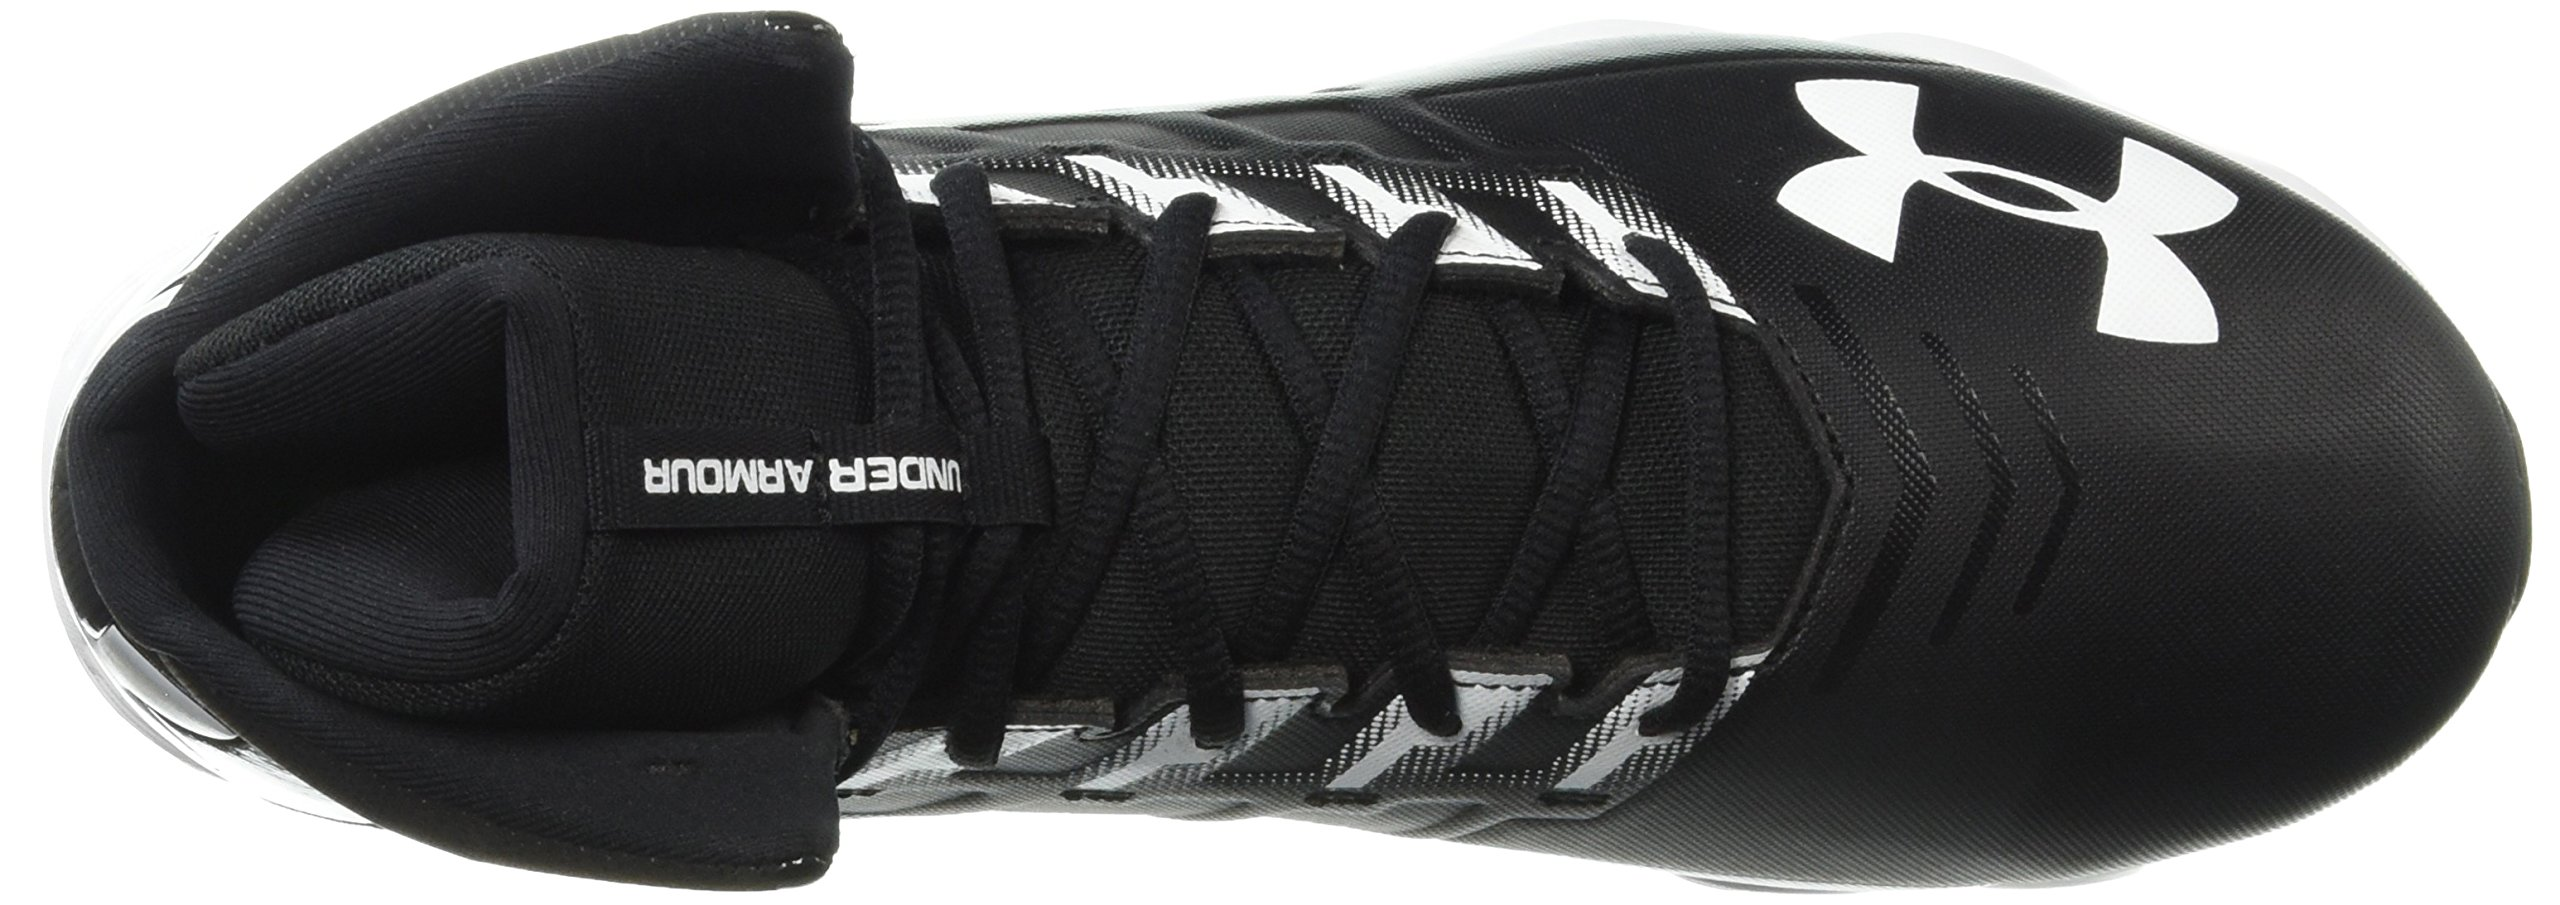 Under Armour Men's Renegade RM Wide Football Shoe 002/Black, 11 W US by Under Armour (Image #7)